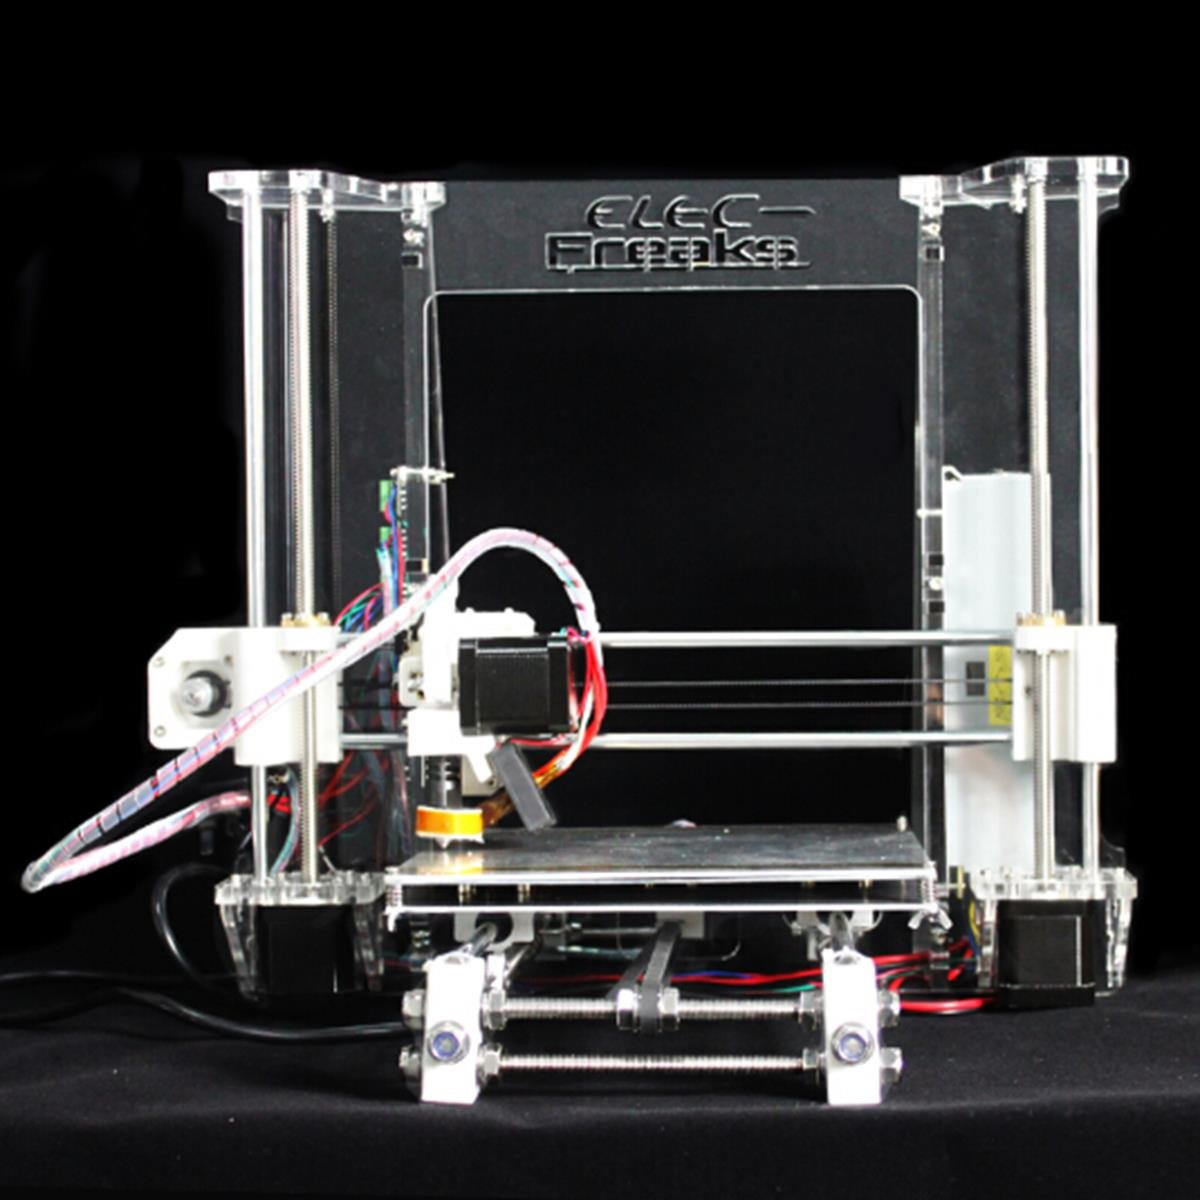 3D Printer Reprap Boards Prusa I3 Full Eboti3 Reprap Prusa I3 (Aluminium Frame) Full Kit